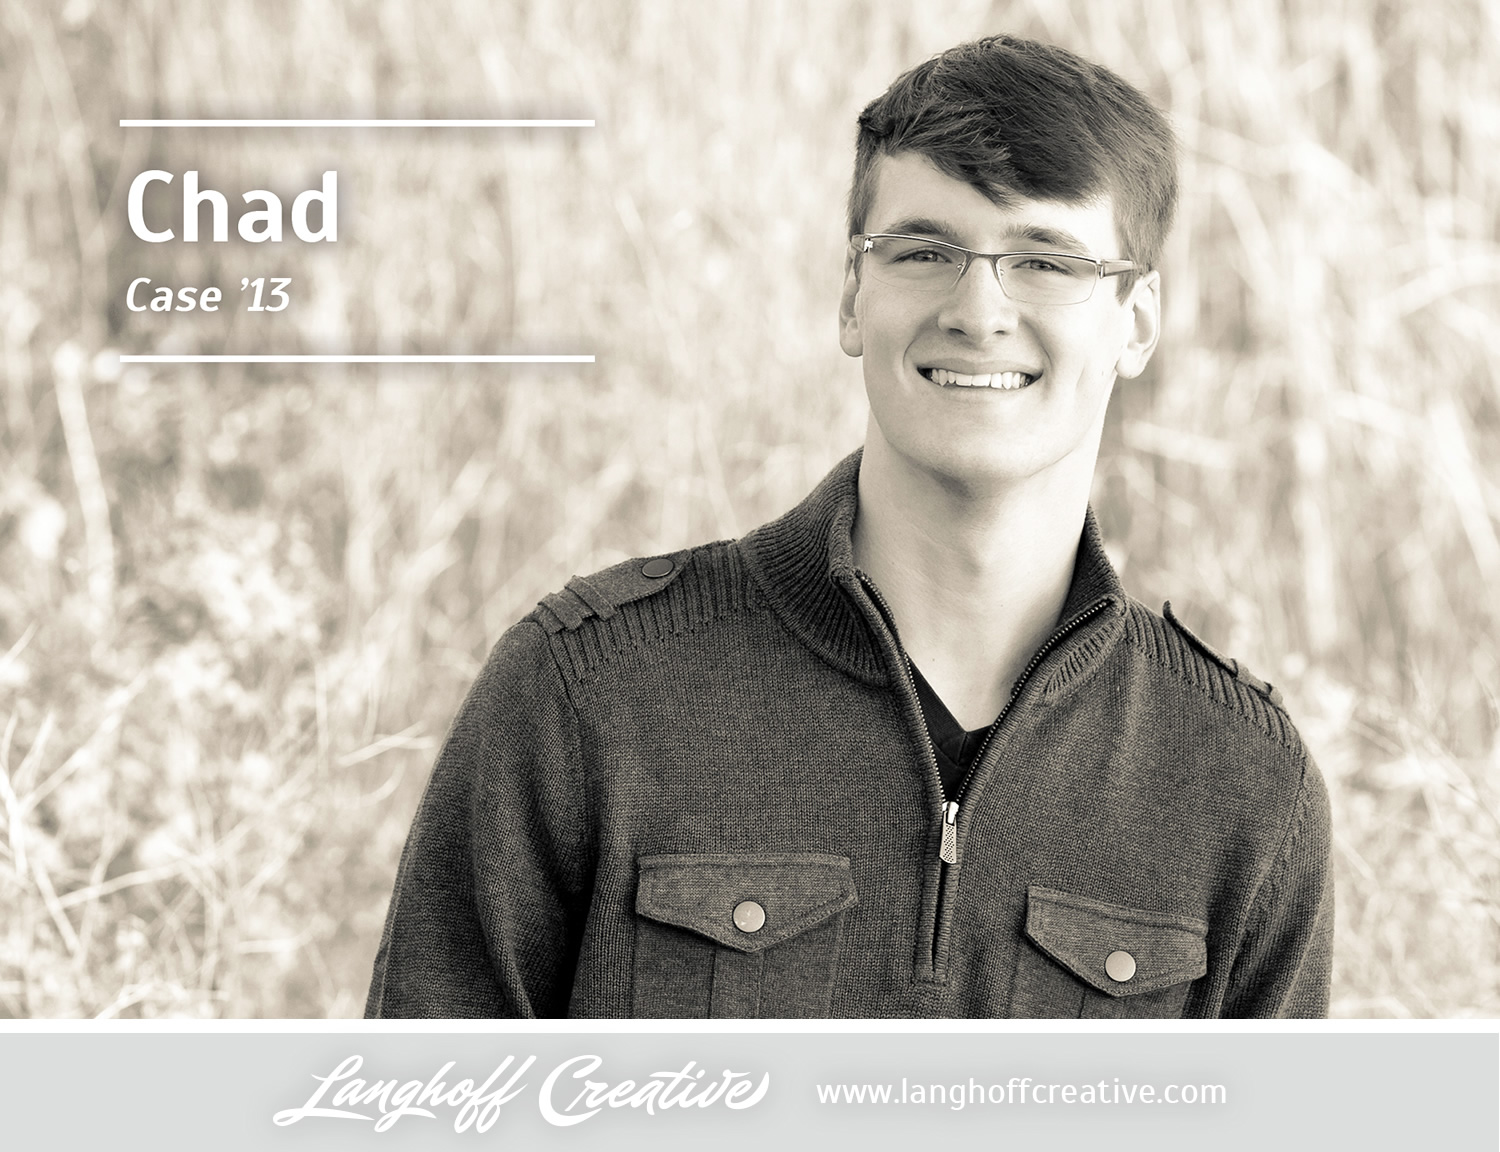 LanghoffCreative-2013RacineSeniorPortrait-Chad01-photo.jpg